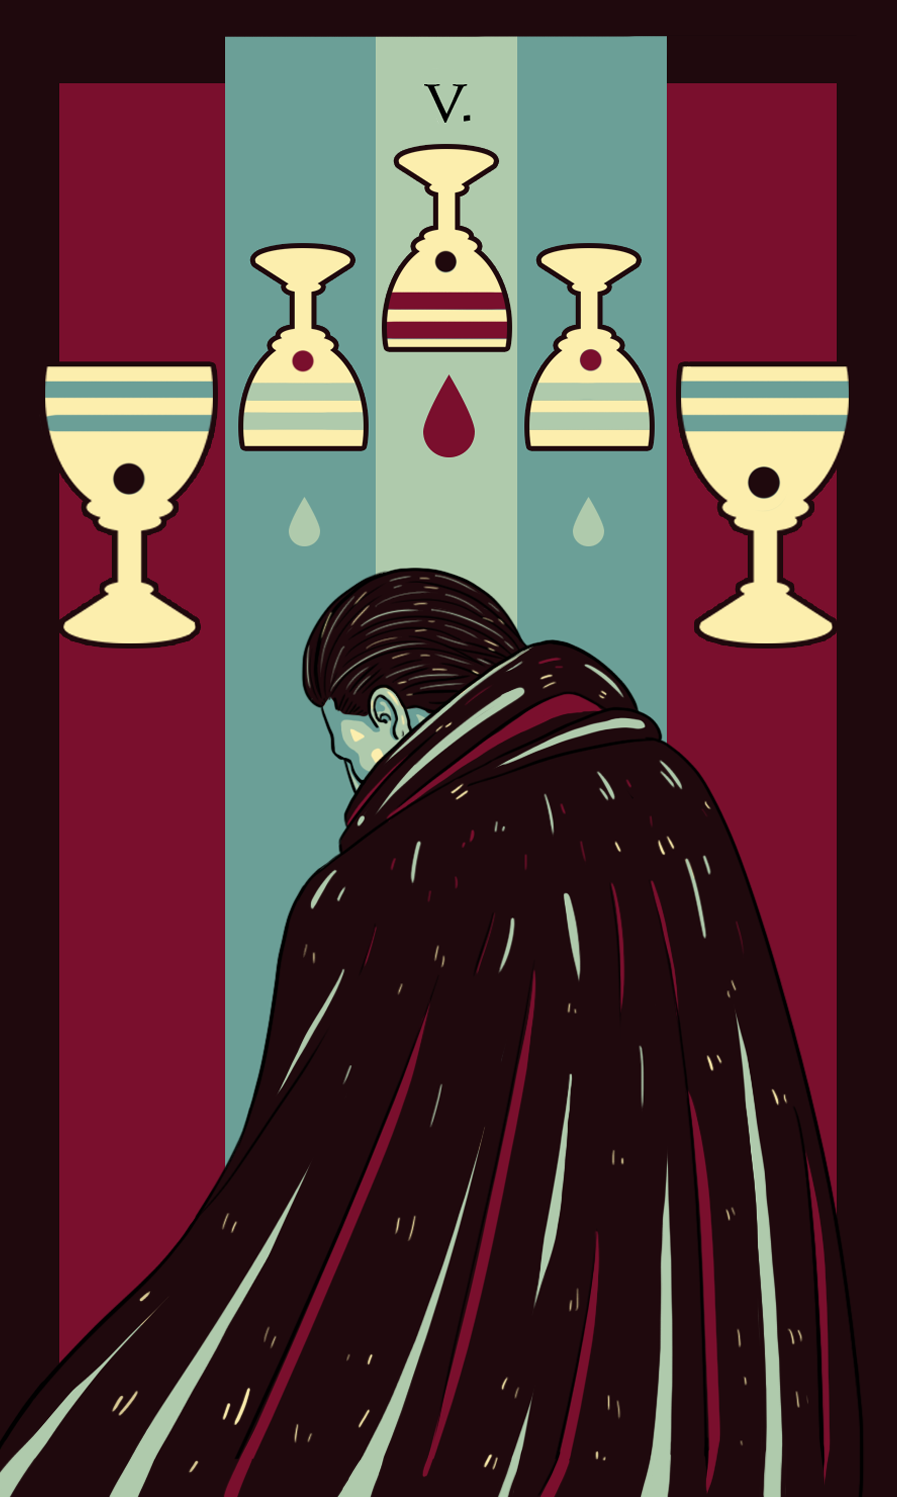 five of cups illustration